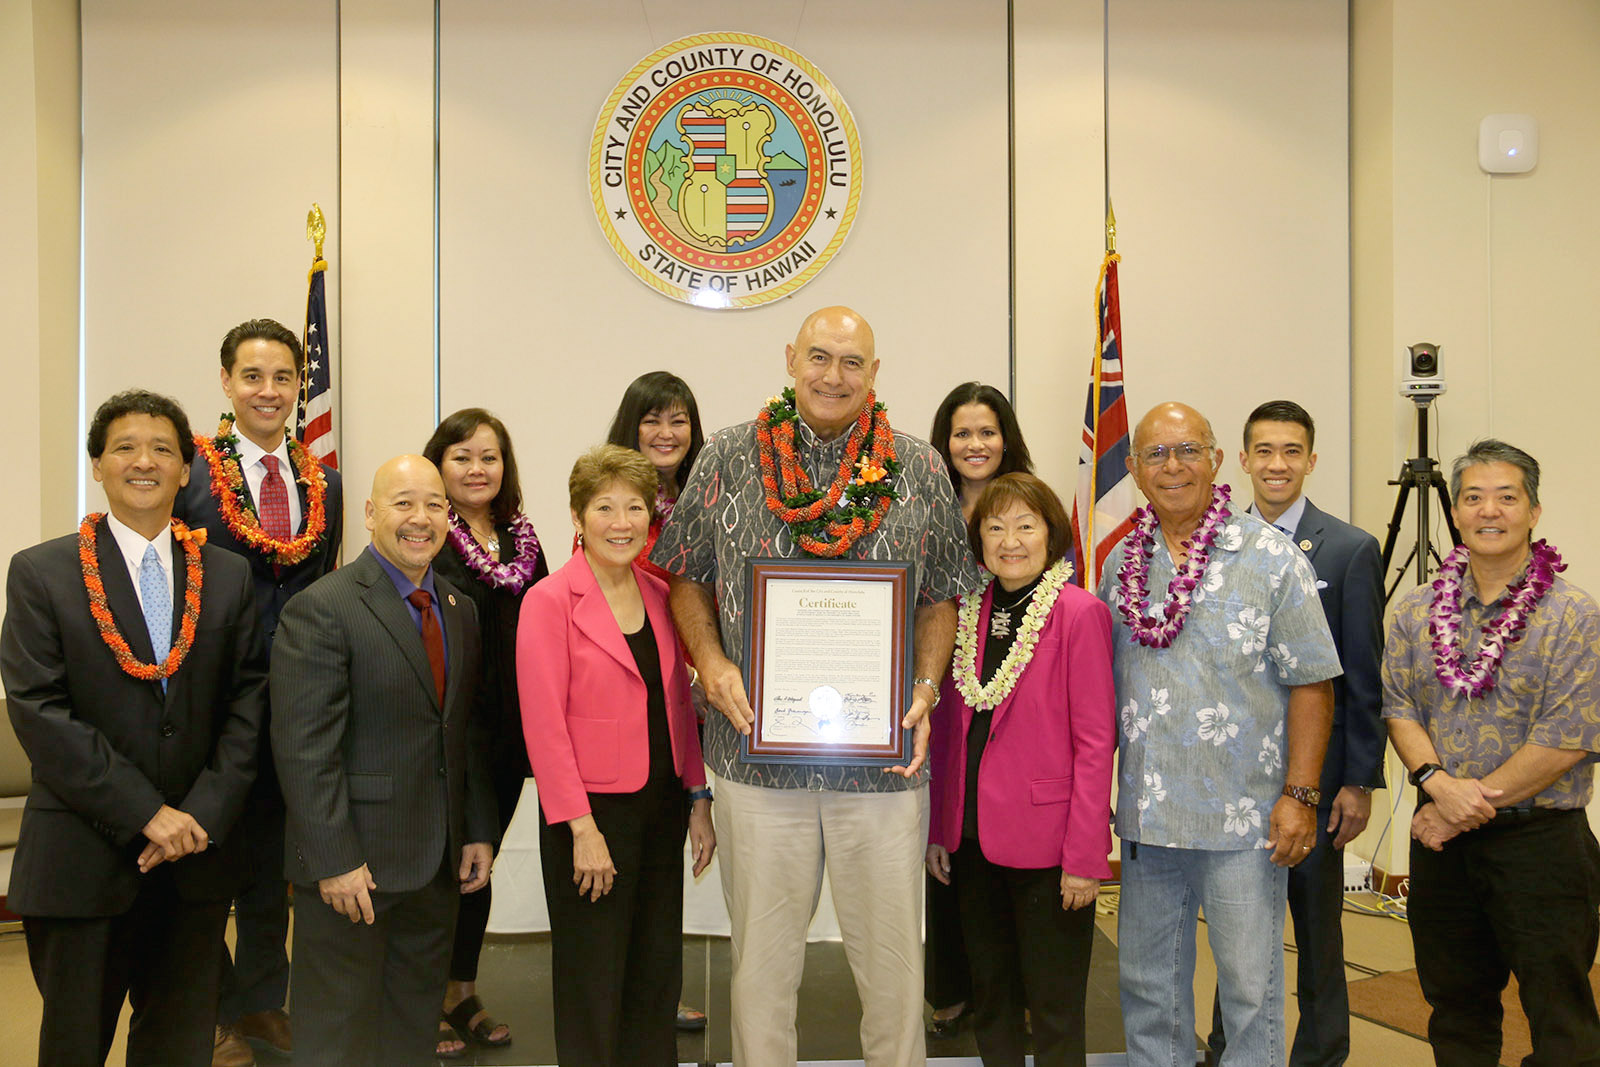 Former UH West Oʻahu Chancellor Rockne Freitas poses with members of the Honolulu City Council, UH West Oʻahu staff Kevin Ishida, Wendy Tatsuno, and Cindy Vinluan, and community member Shad Kane.